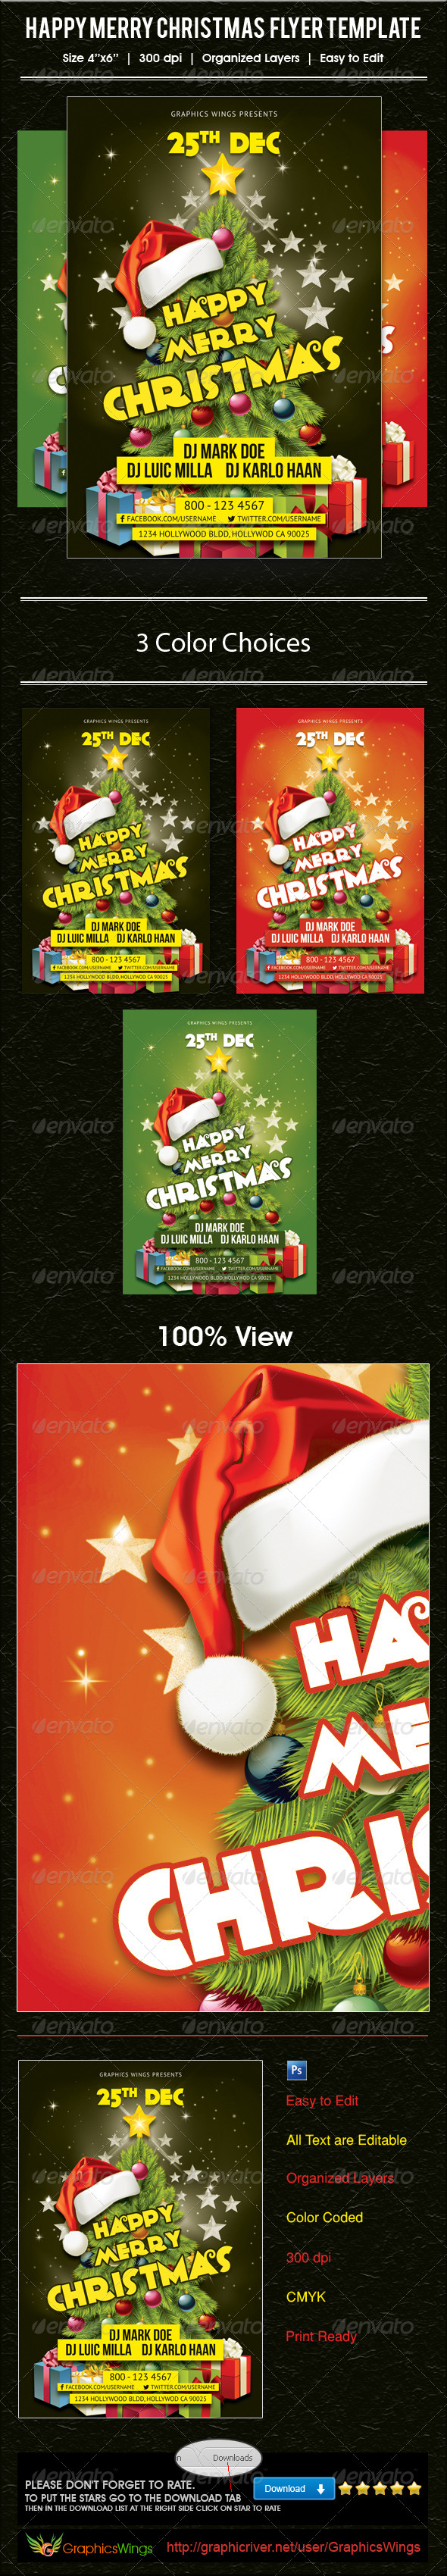 Happy Merry Christmas Flyer Template - Events Flyers